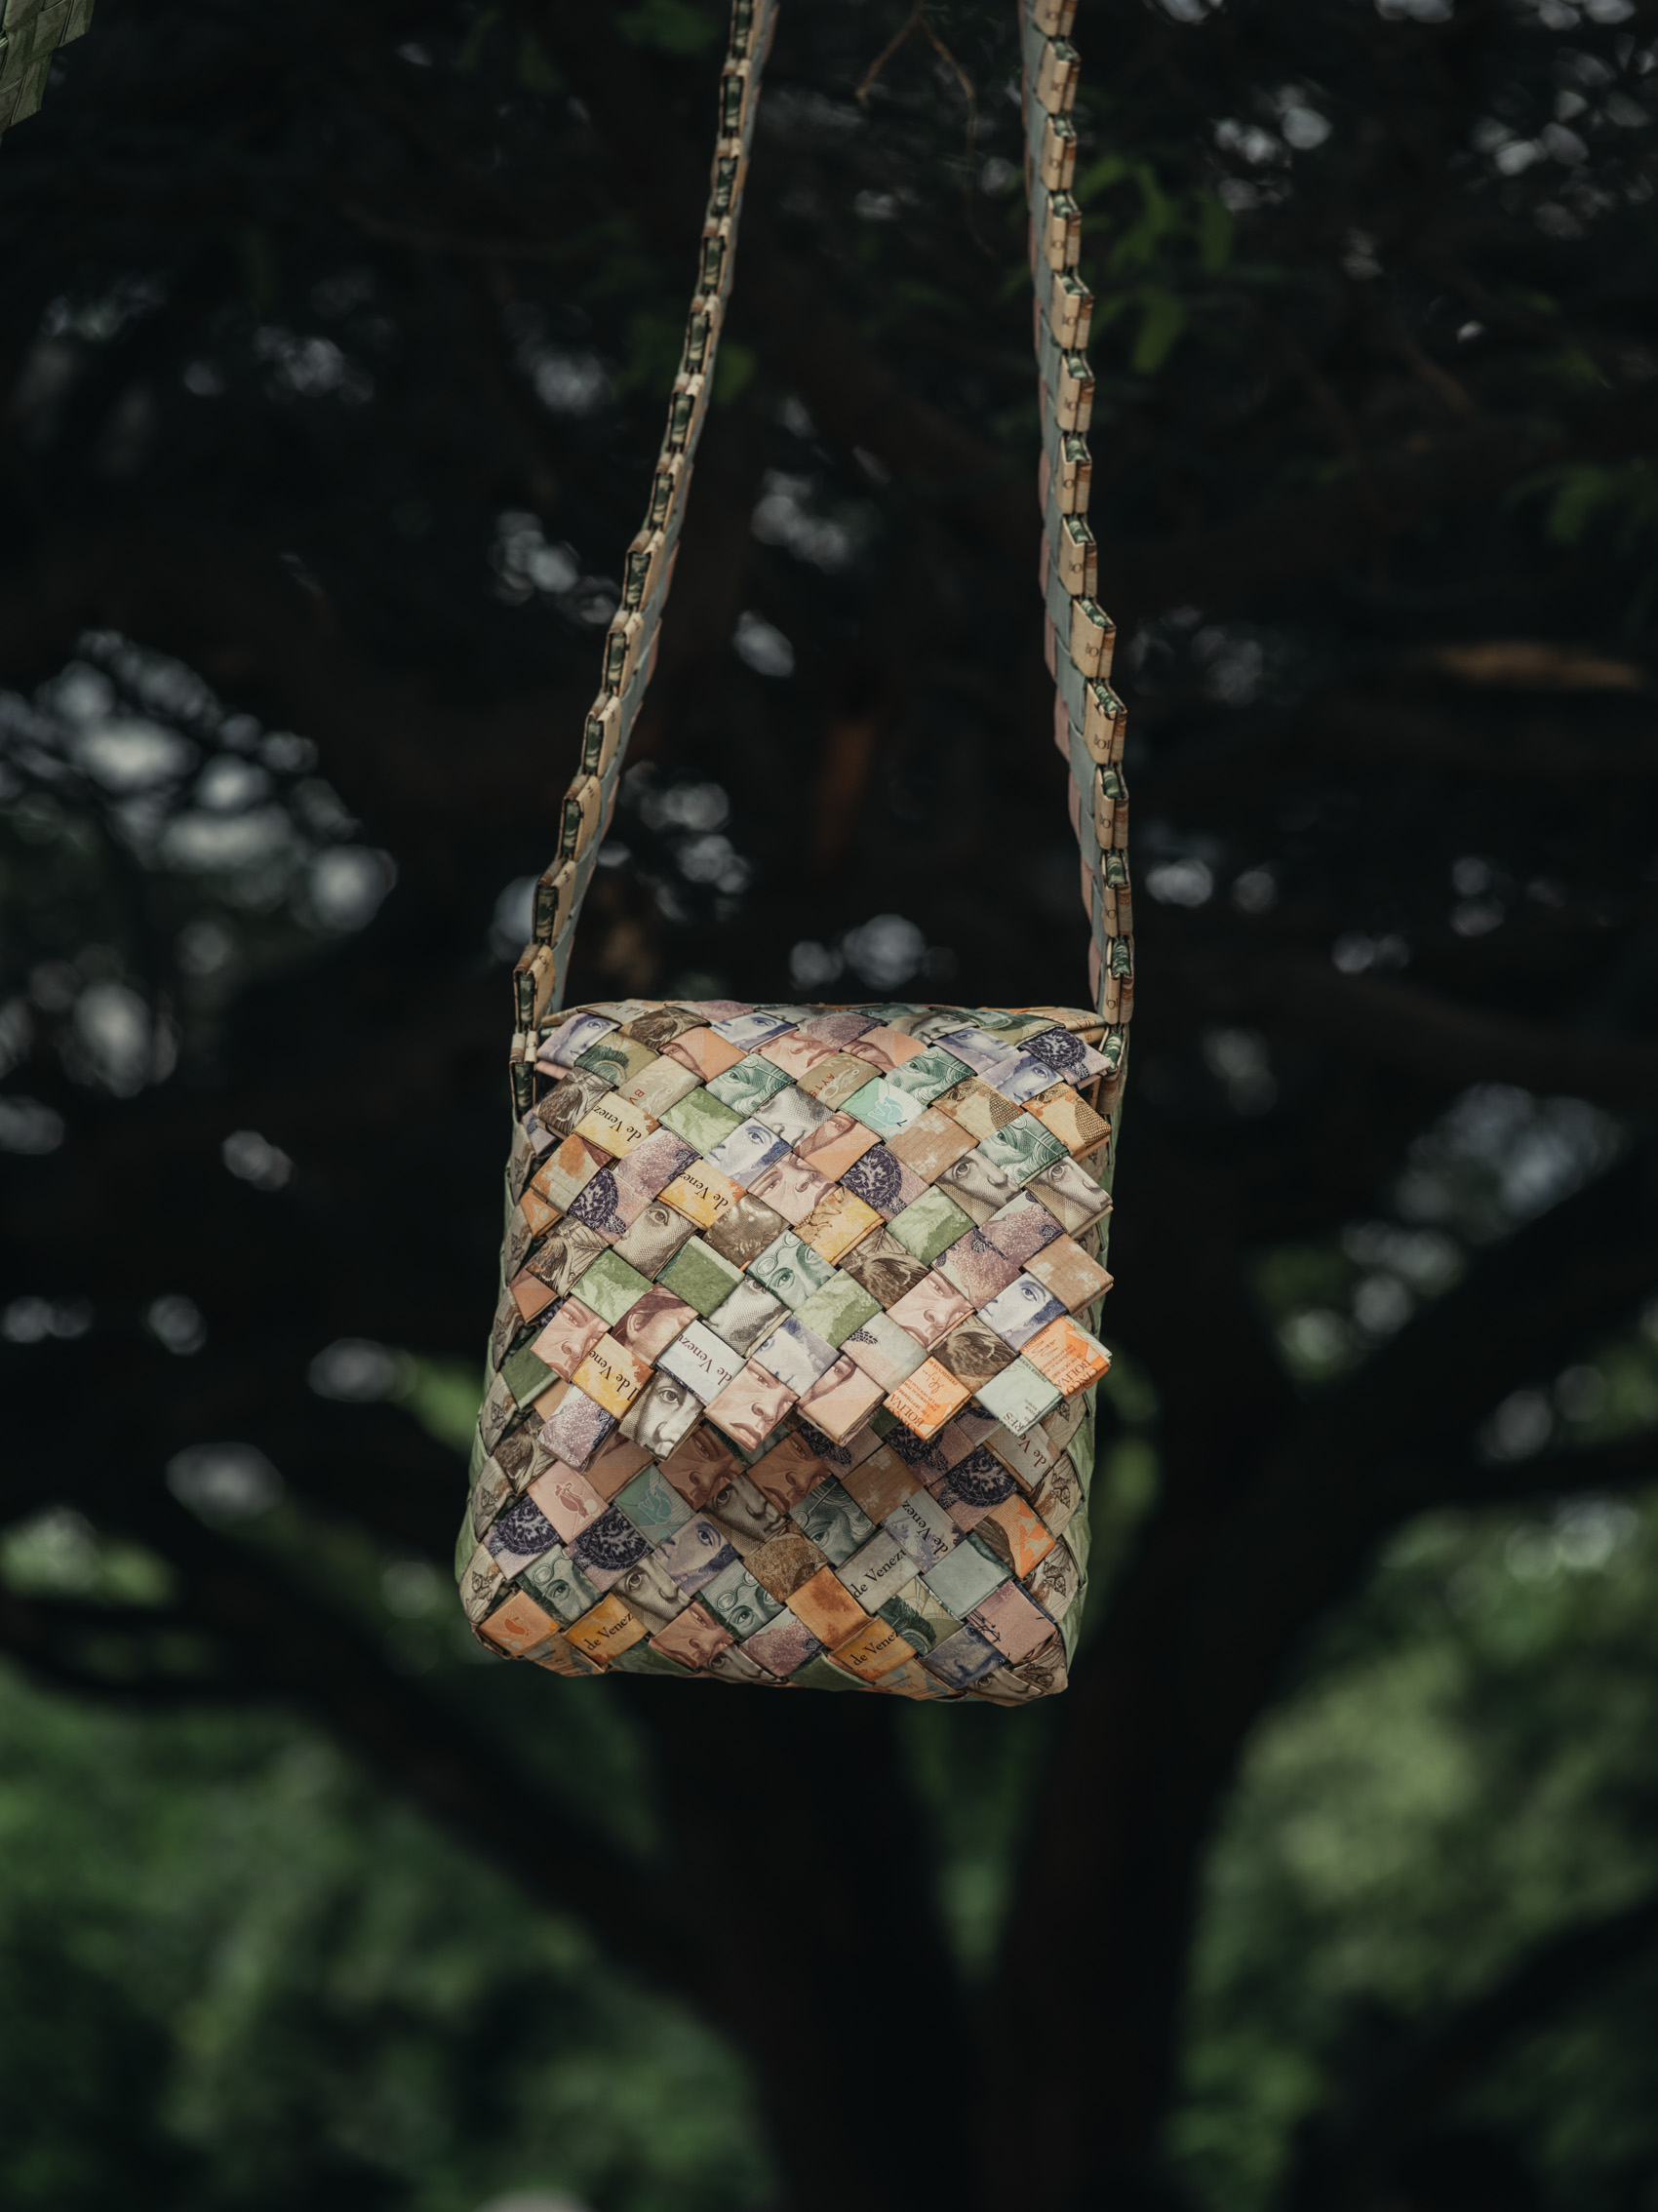 Bolí­vares are used to weave purses at the border of Colombia and Venezuela